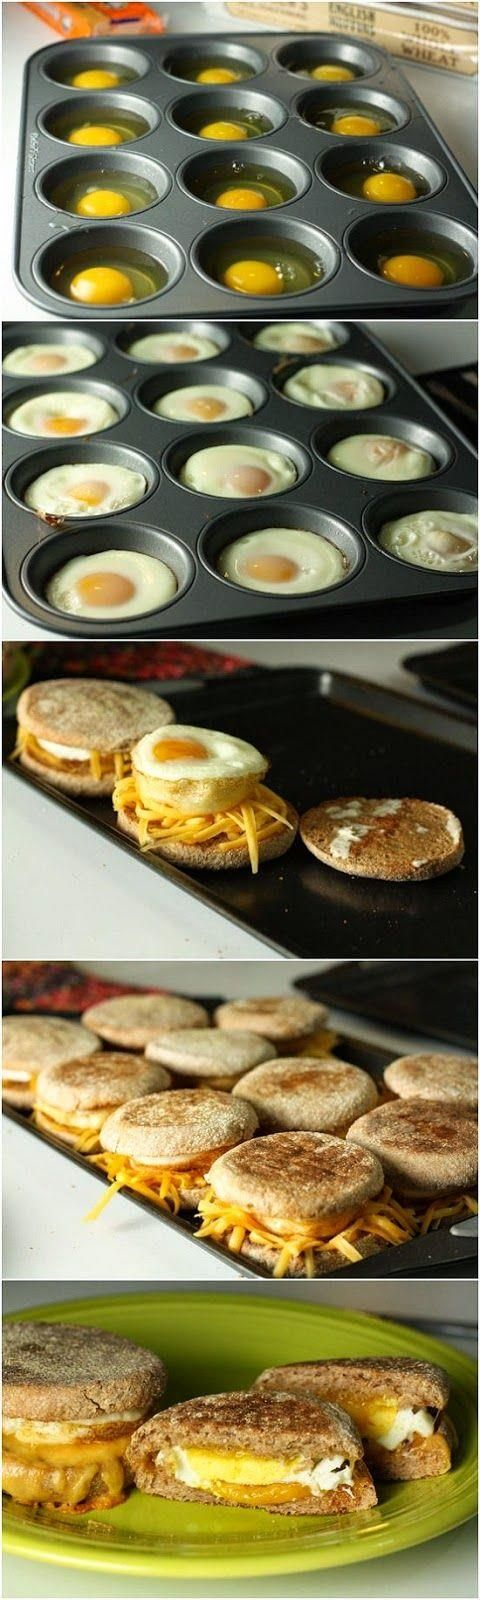 Baked Eggs In A Muffin Tin  Really fun way to do something different - and healthy - with eggs.